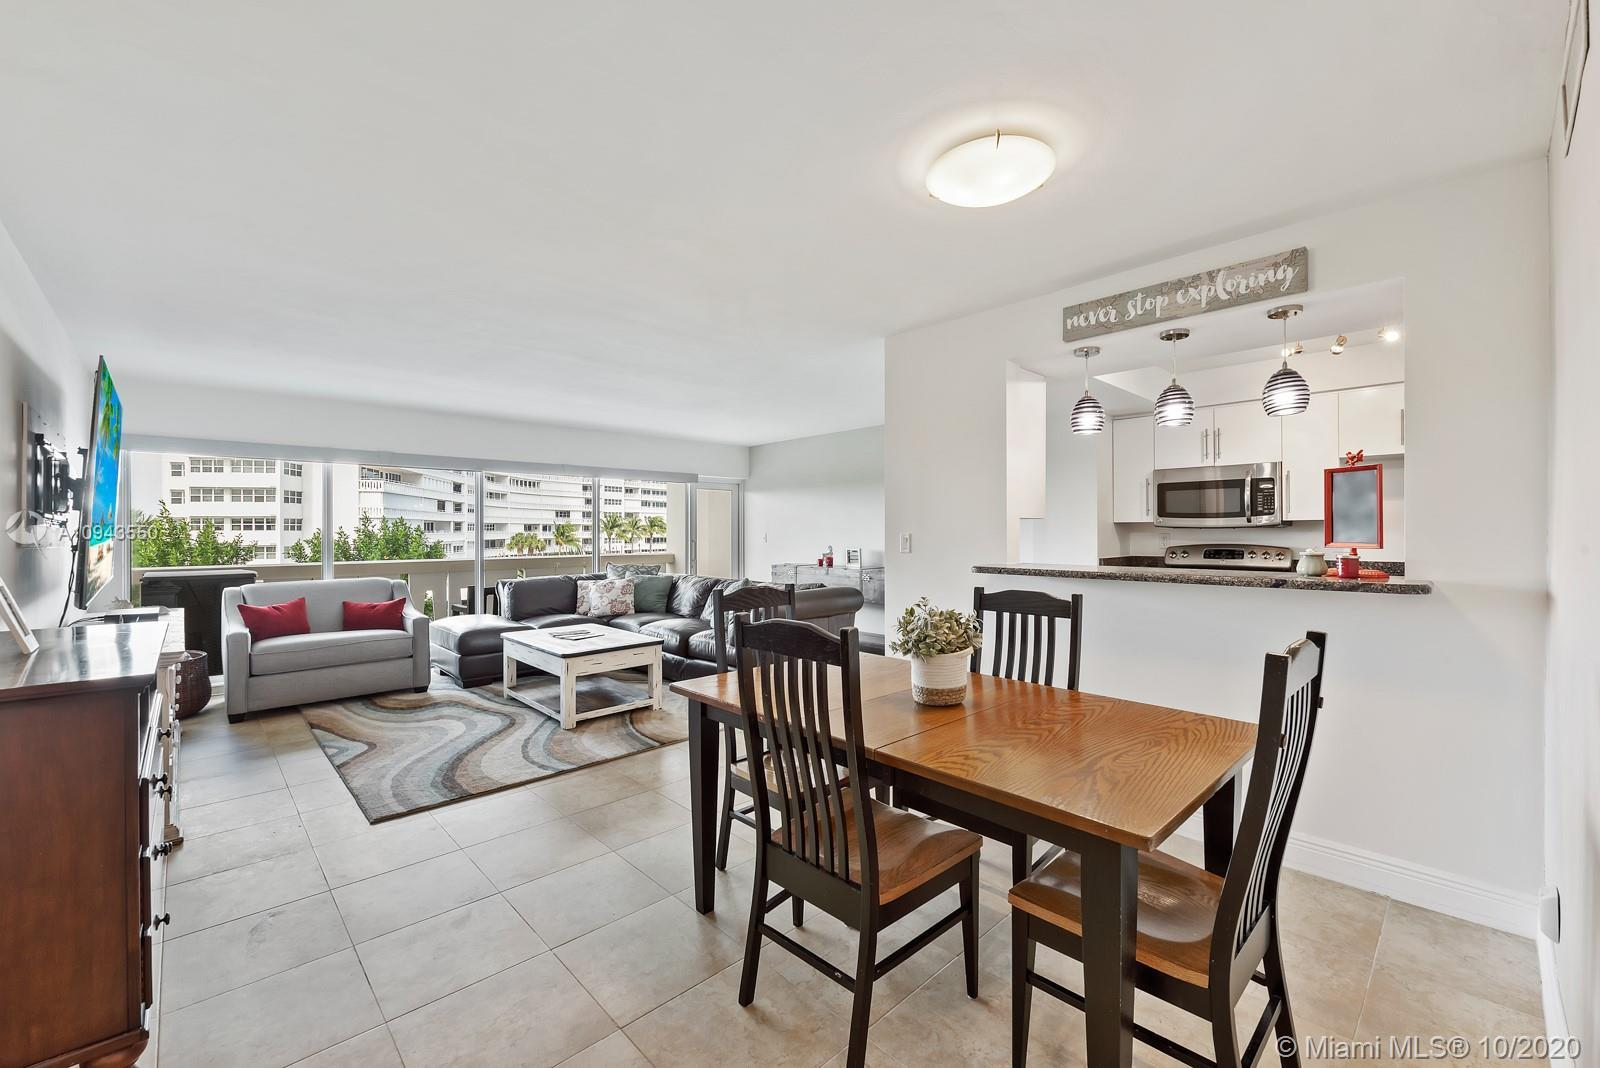 Step into this beautifully remodeled 2 Bed + 2 Bath, move-in ready condo at Sky Harbour East. This r